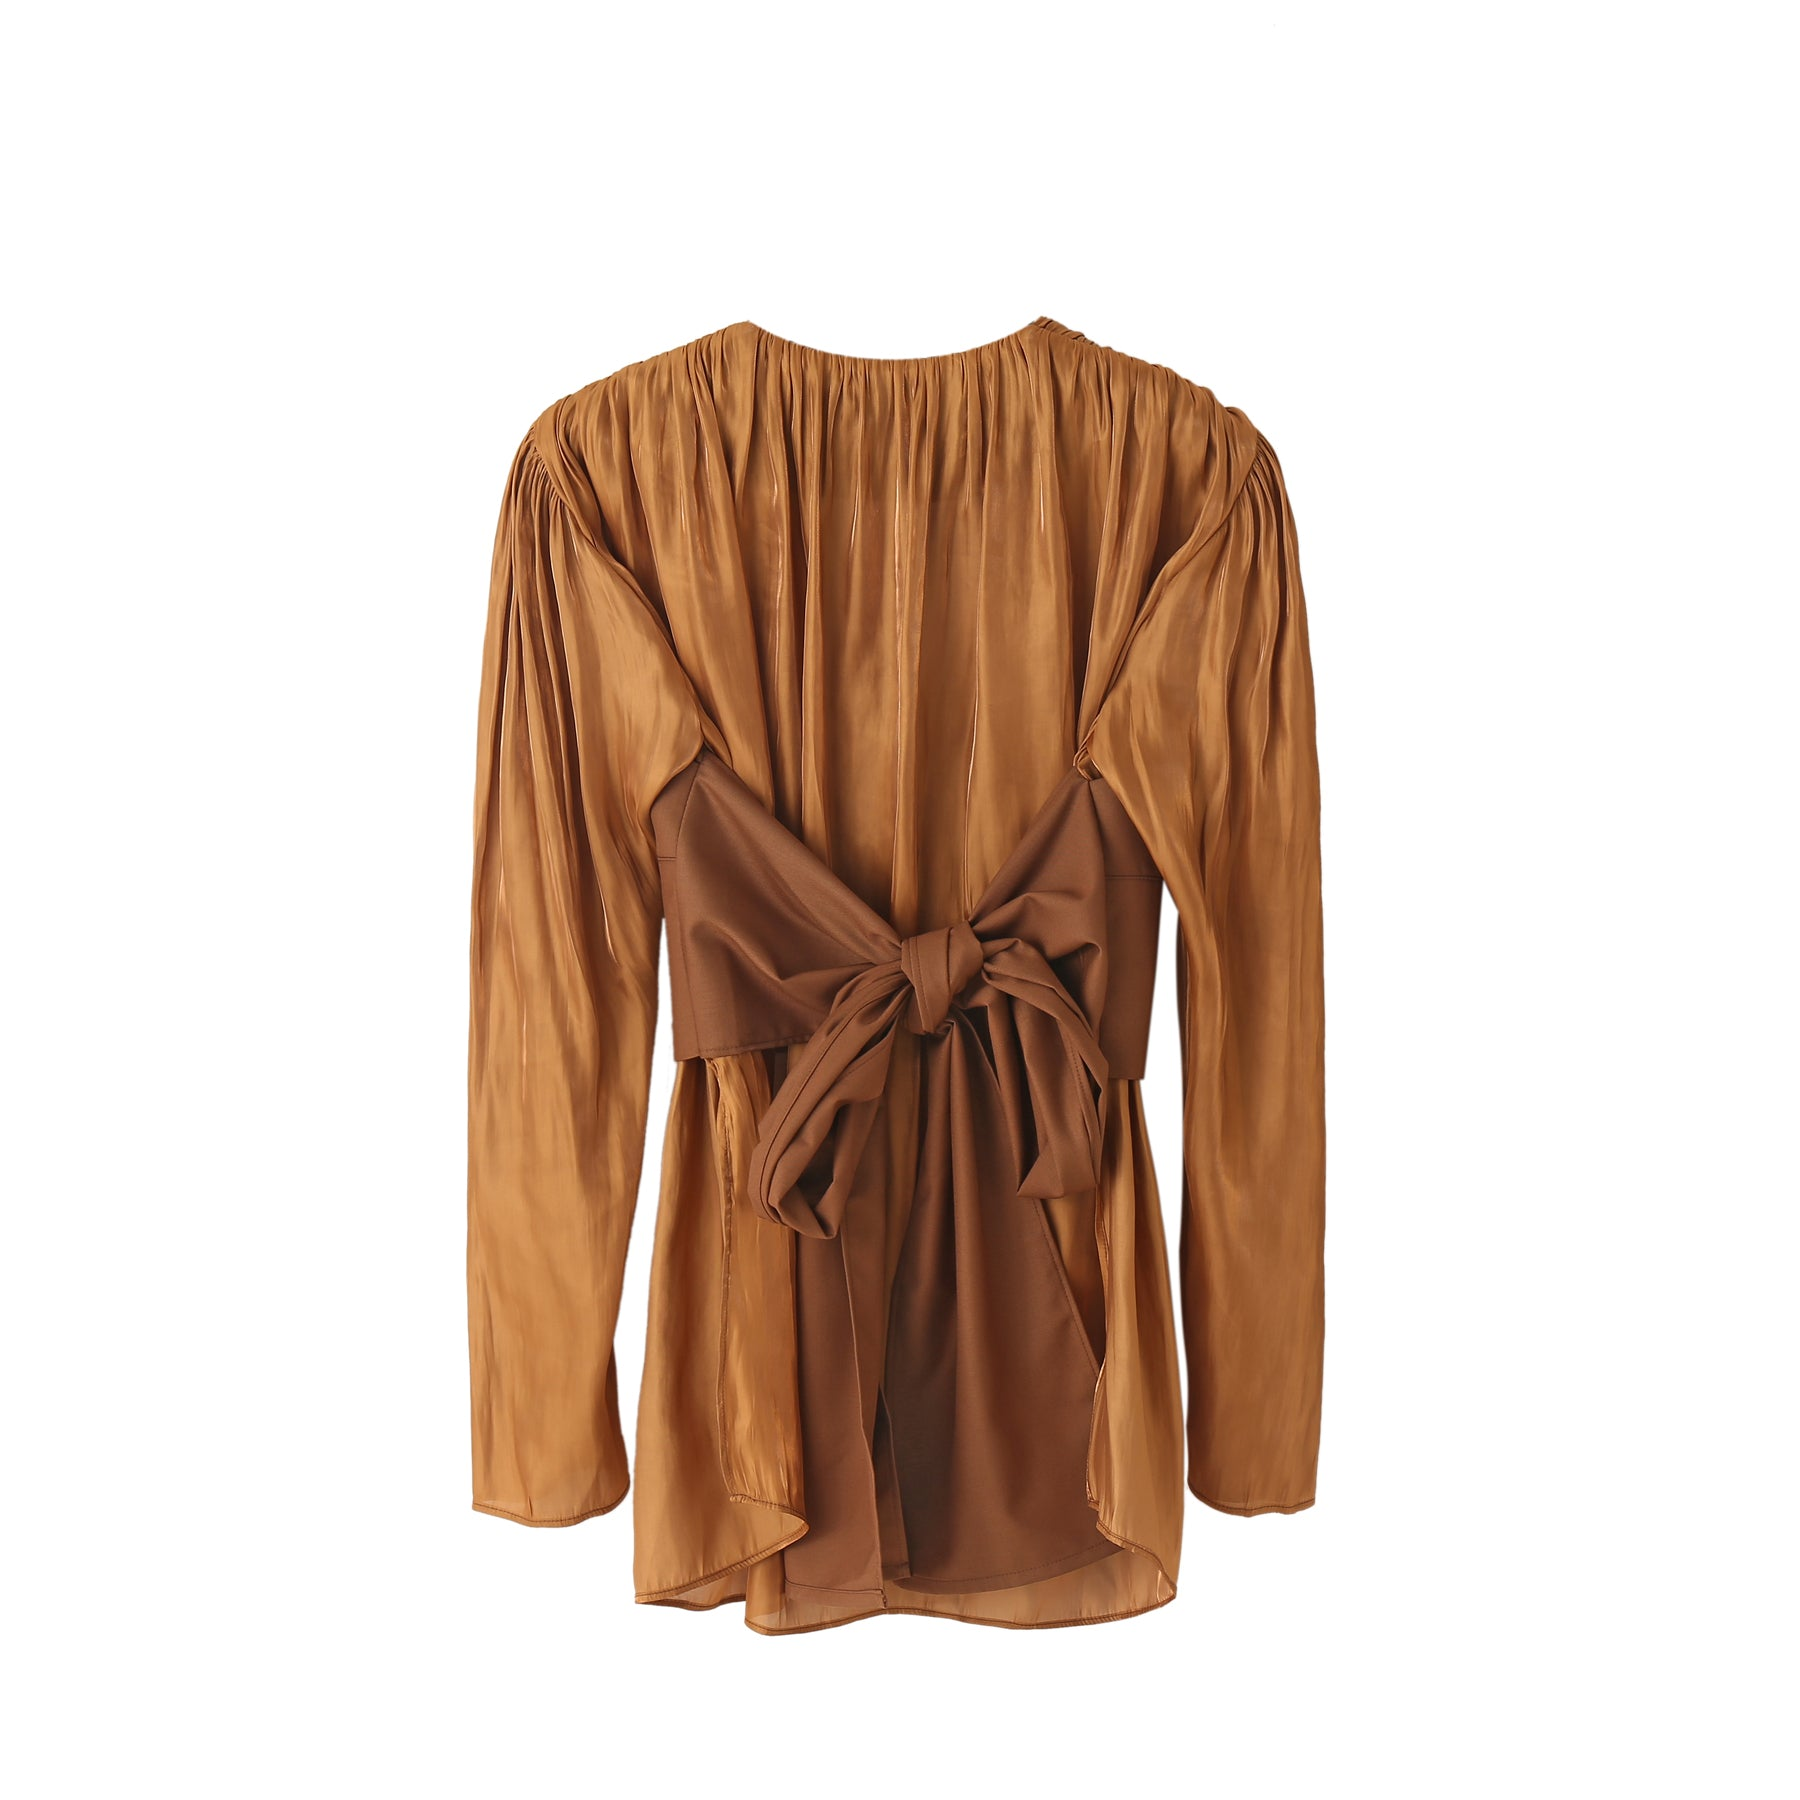 Winifred Corset Top in Copper